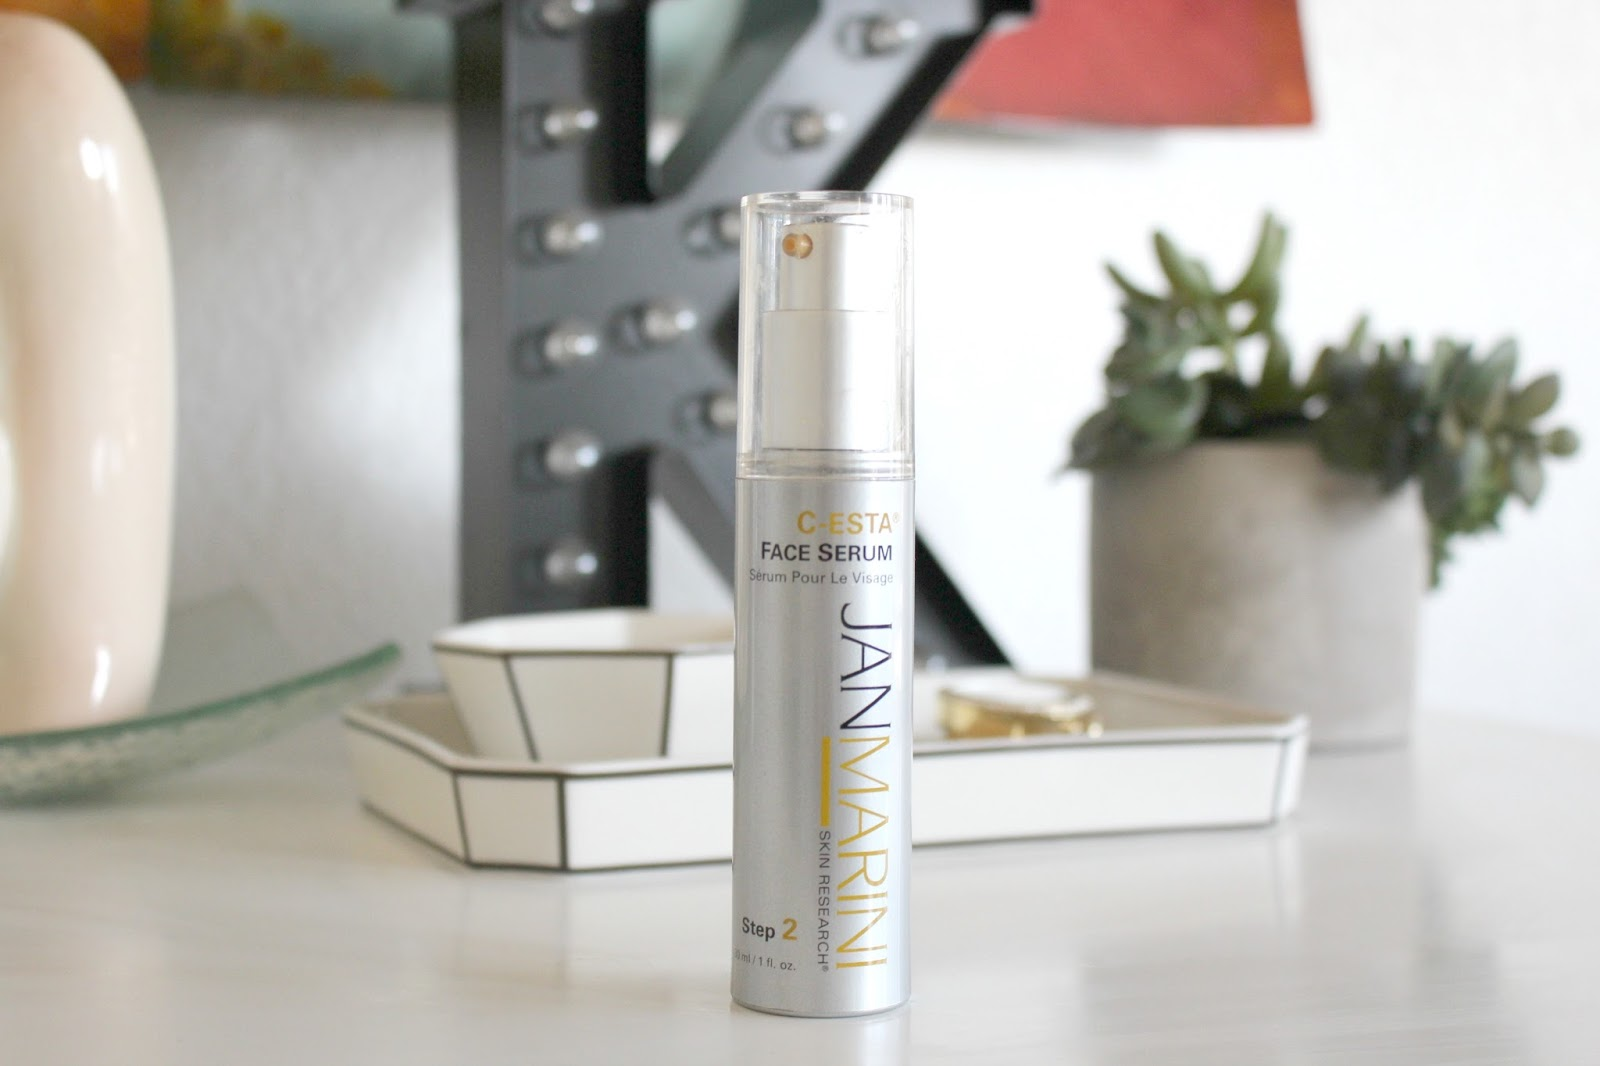 Jan Marini C-Esta Face Serum review